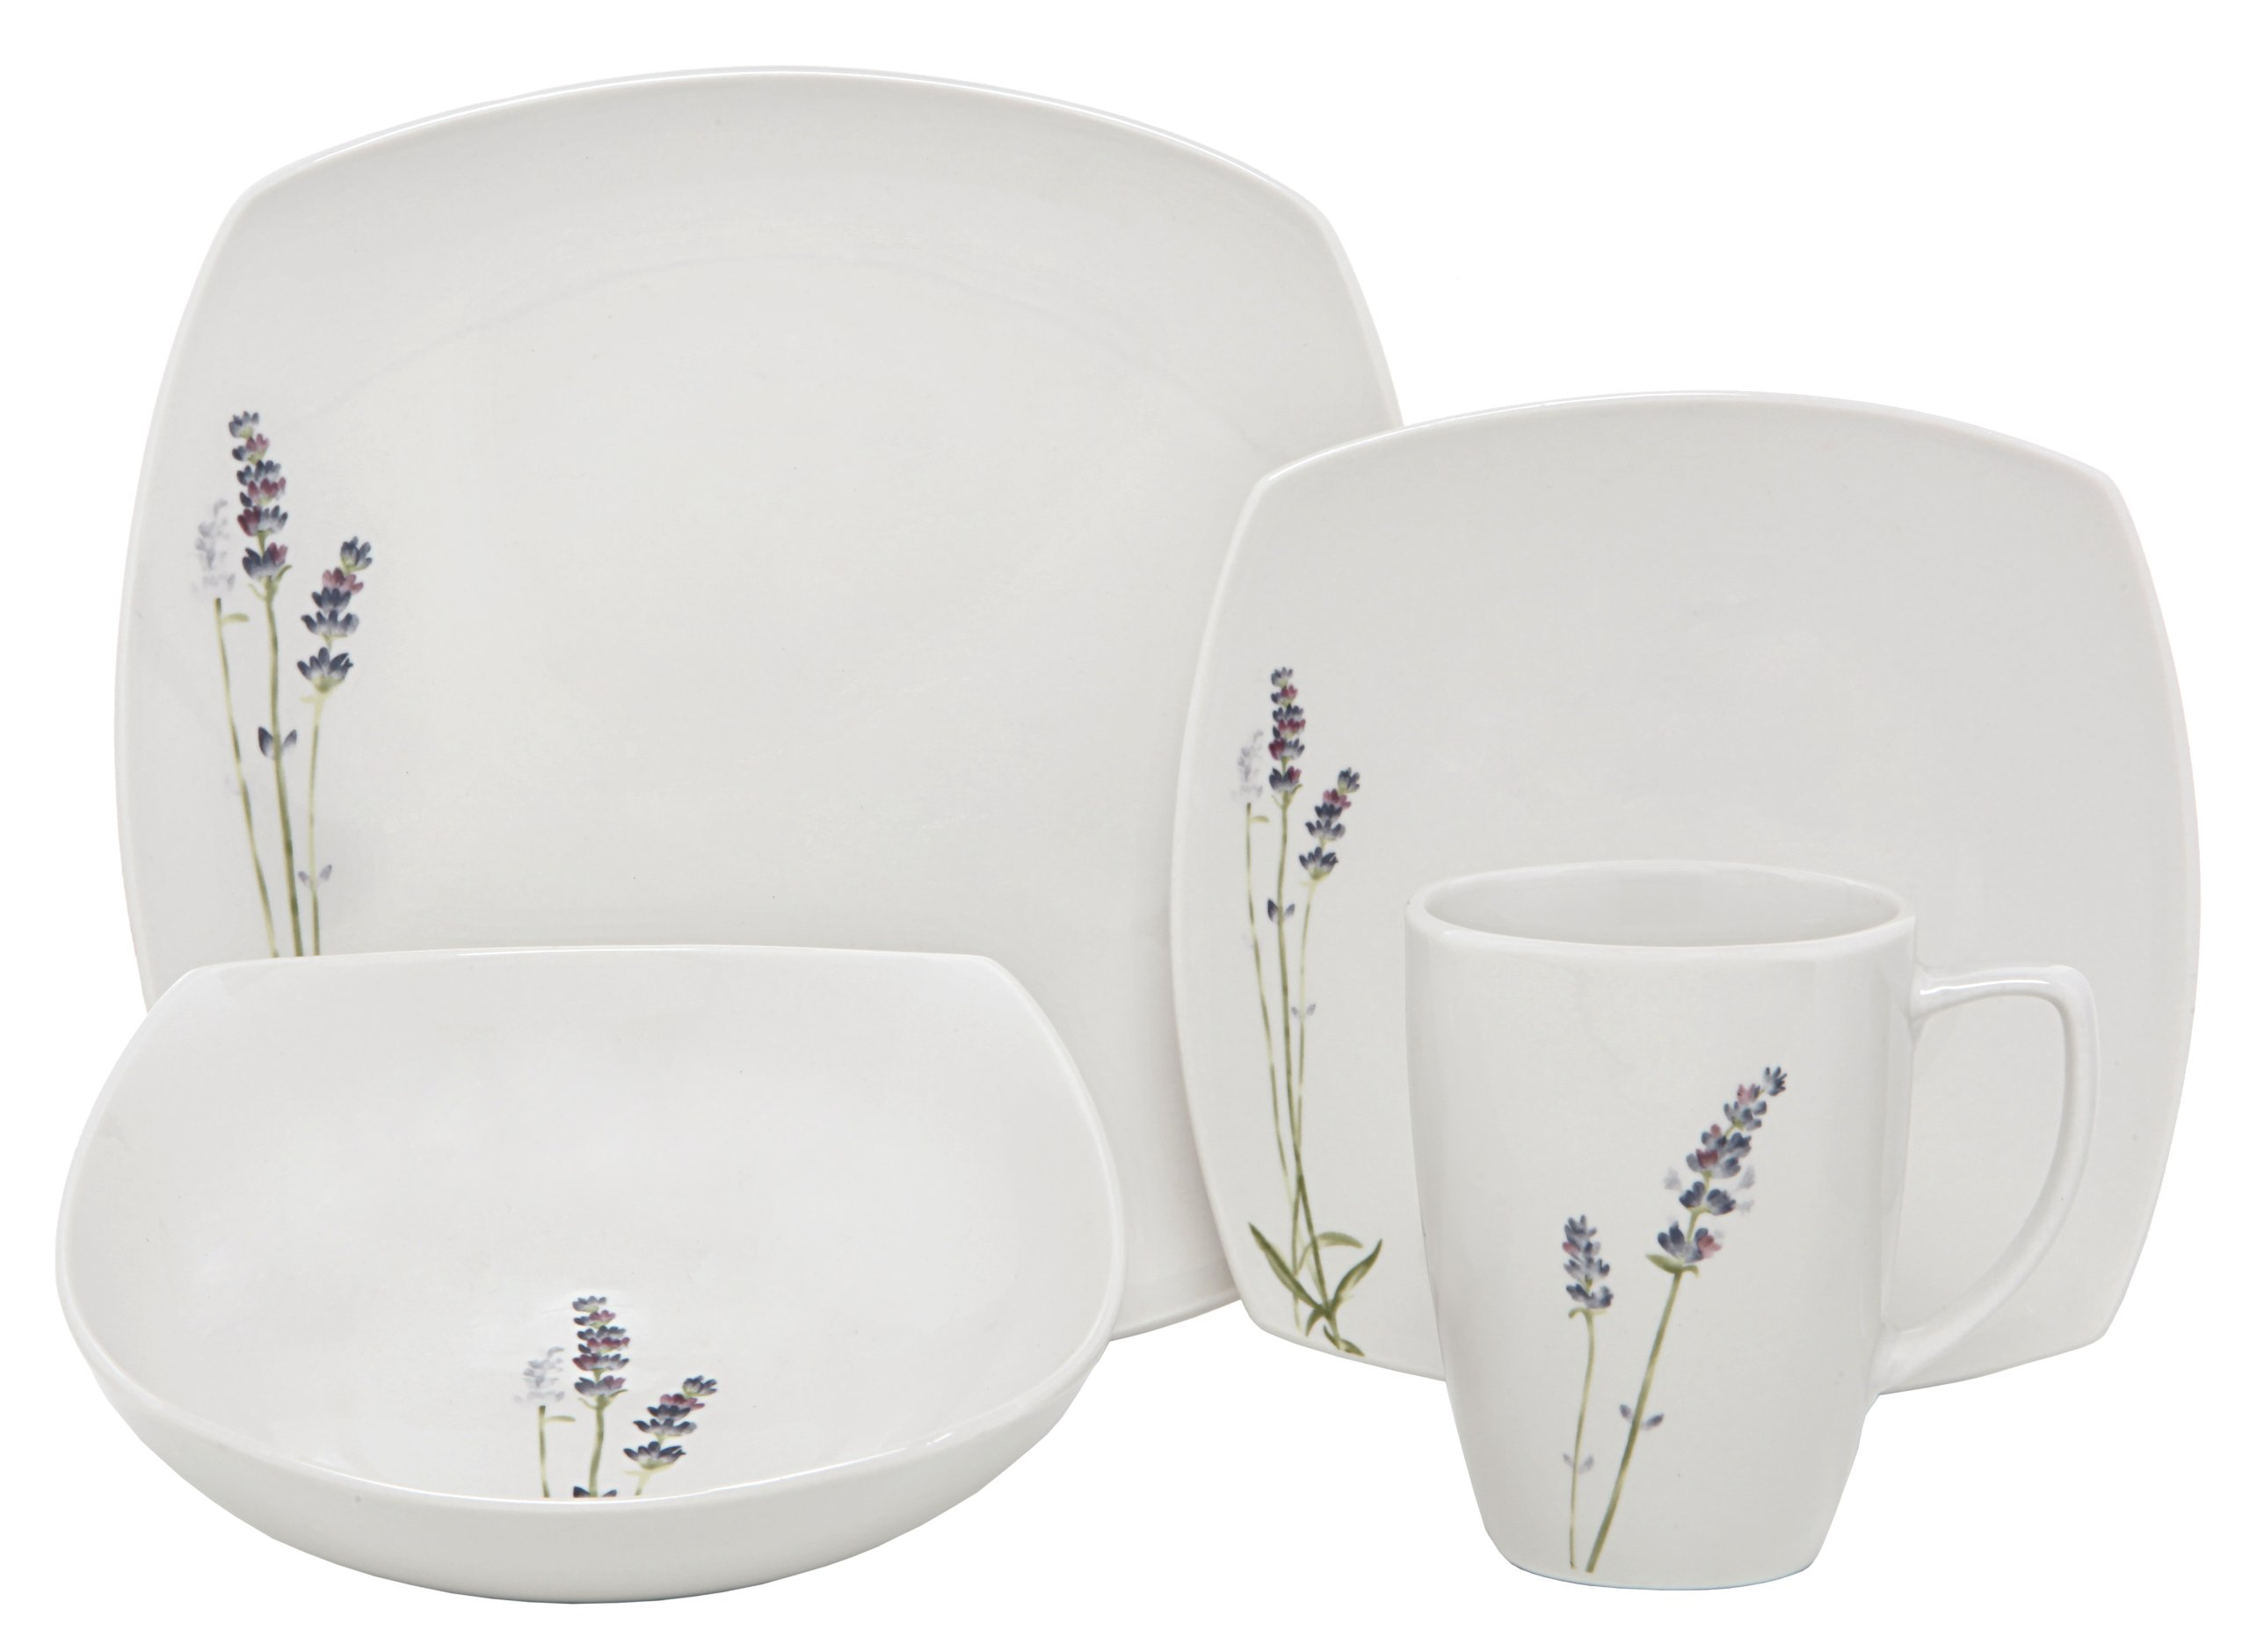 Melange Square 32-Piece Porcelain Dinnerware Set (Lavender) | Service for 8 | Microwave, Dishwasher & Oven Safe | Dinner Plate, Salad Plate, Soup Bowl & Mug (8 Each)